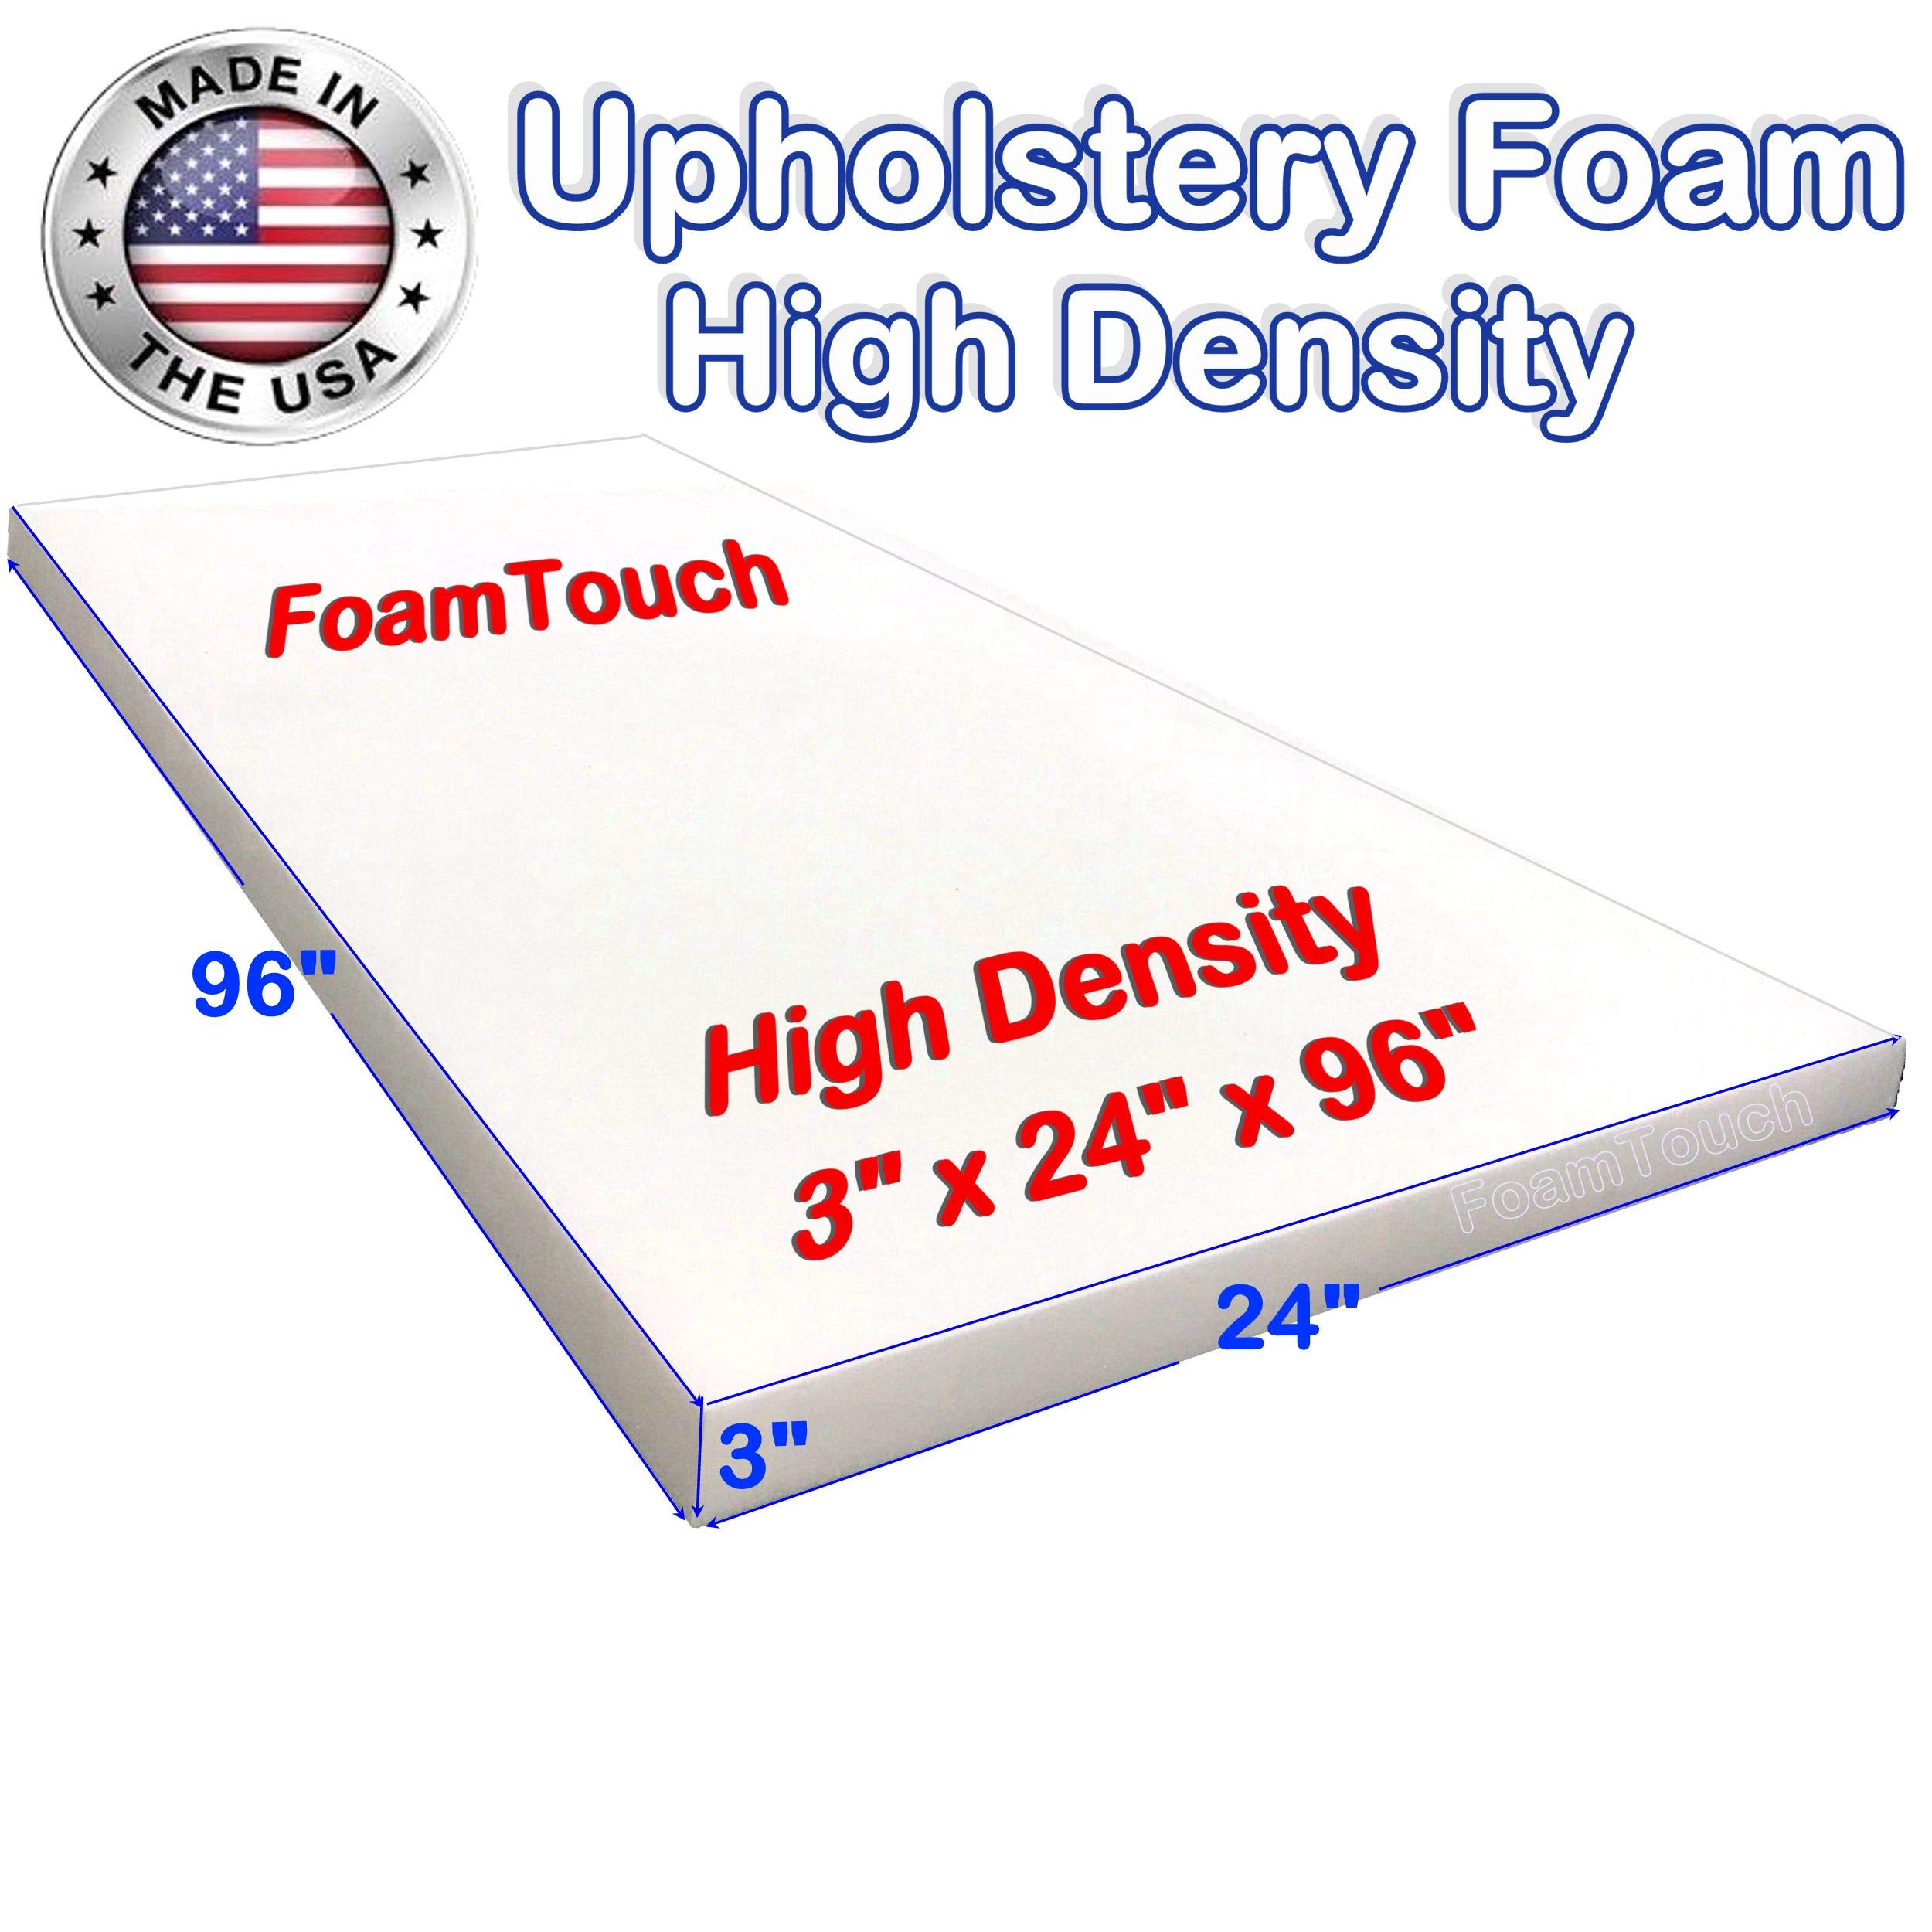 FoamTouch Upholstery Foam Cushion High Density 6 Height x 27 Width x 68 Length Made in USA